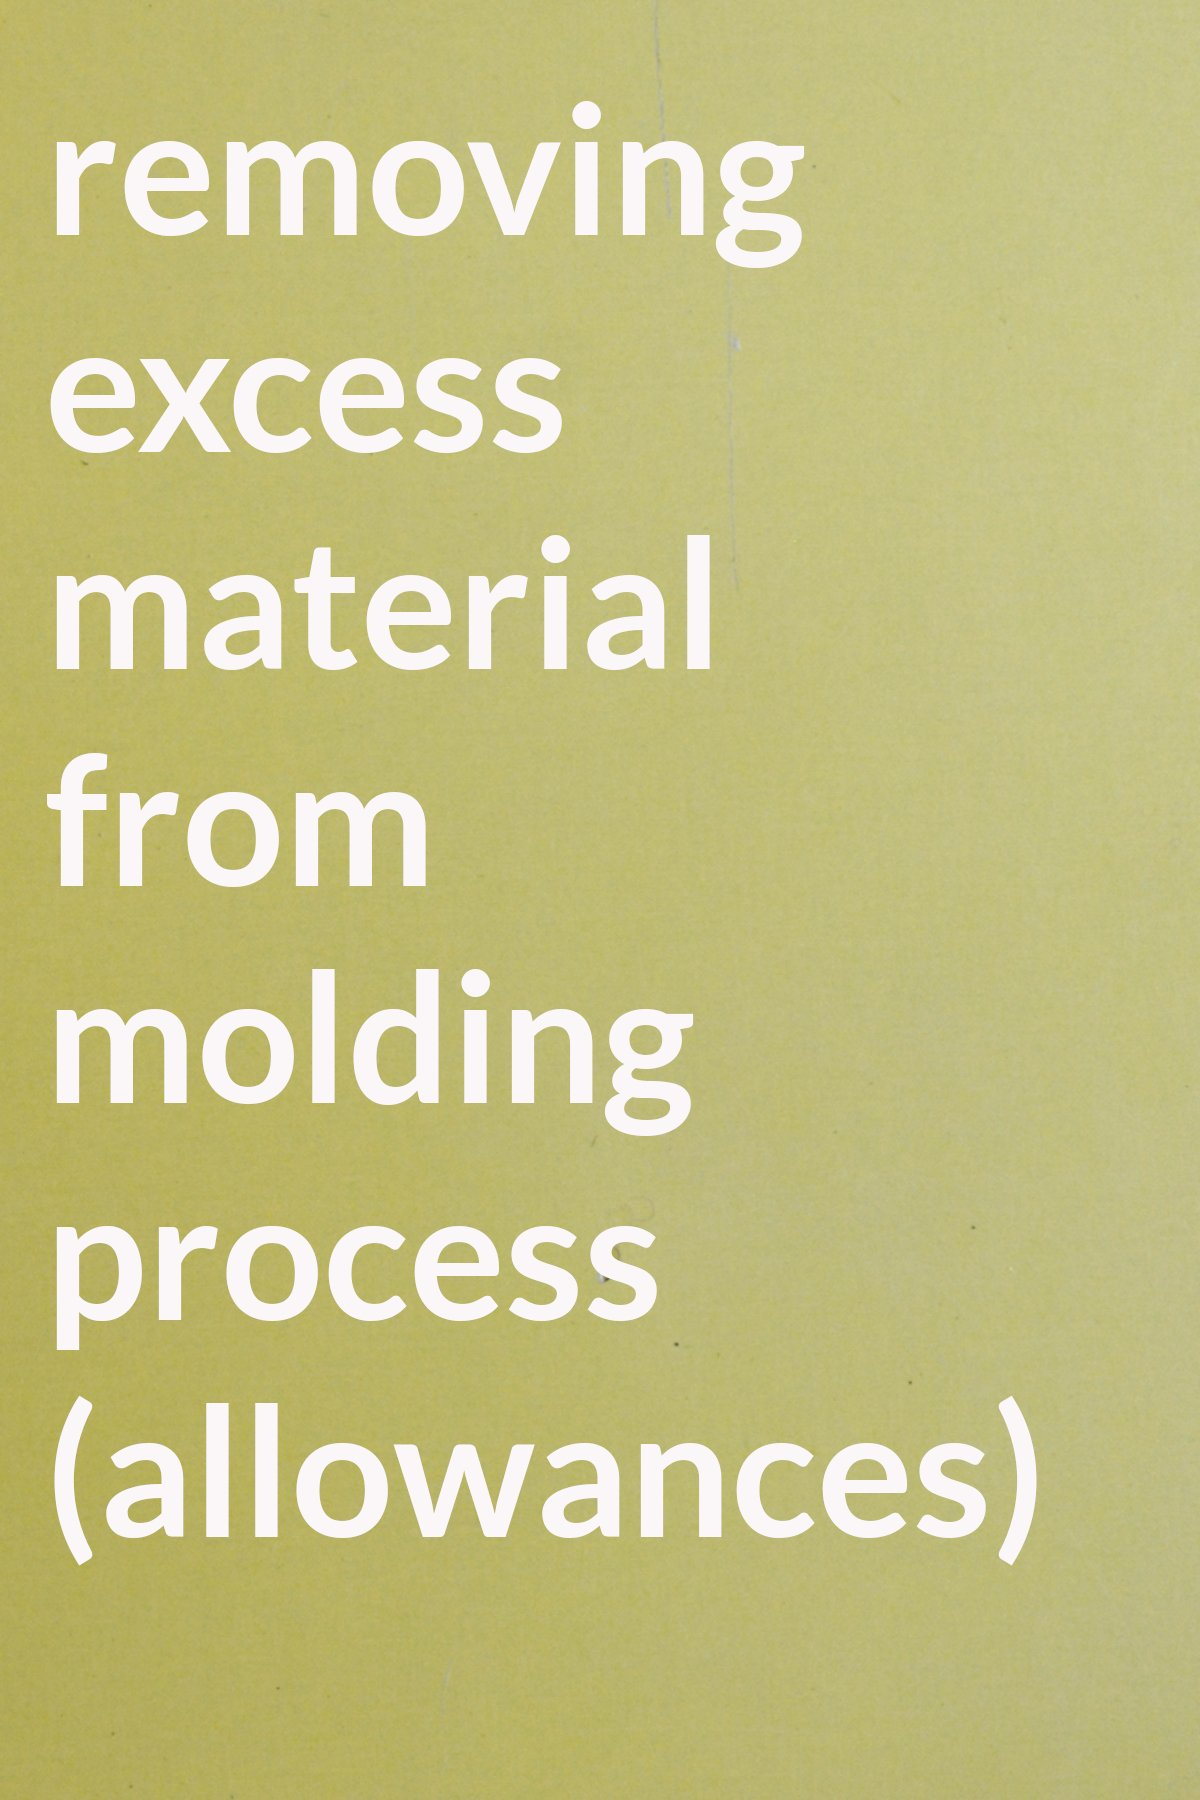 removing excess material from molding process (allowances)